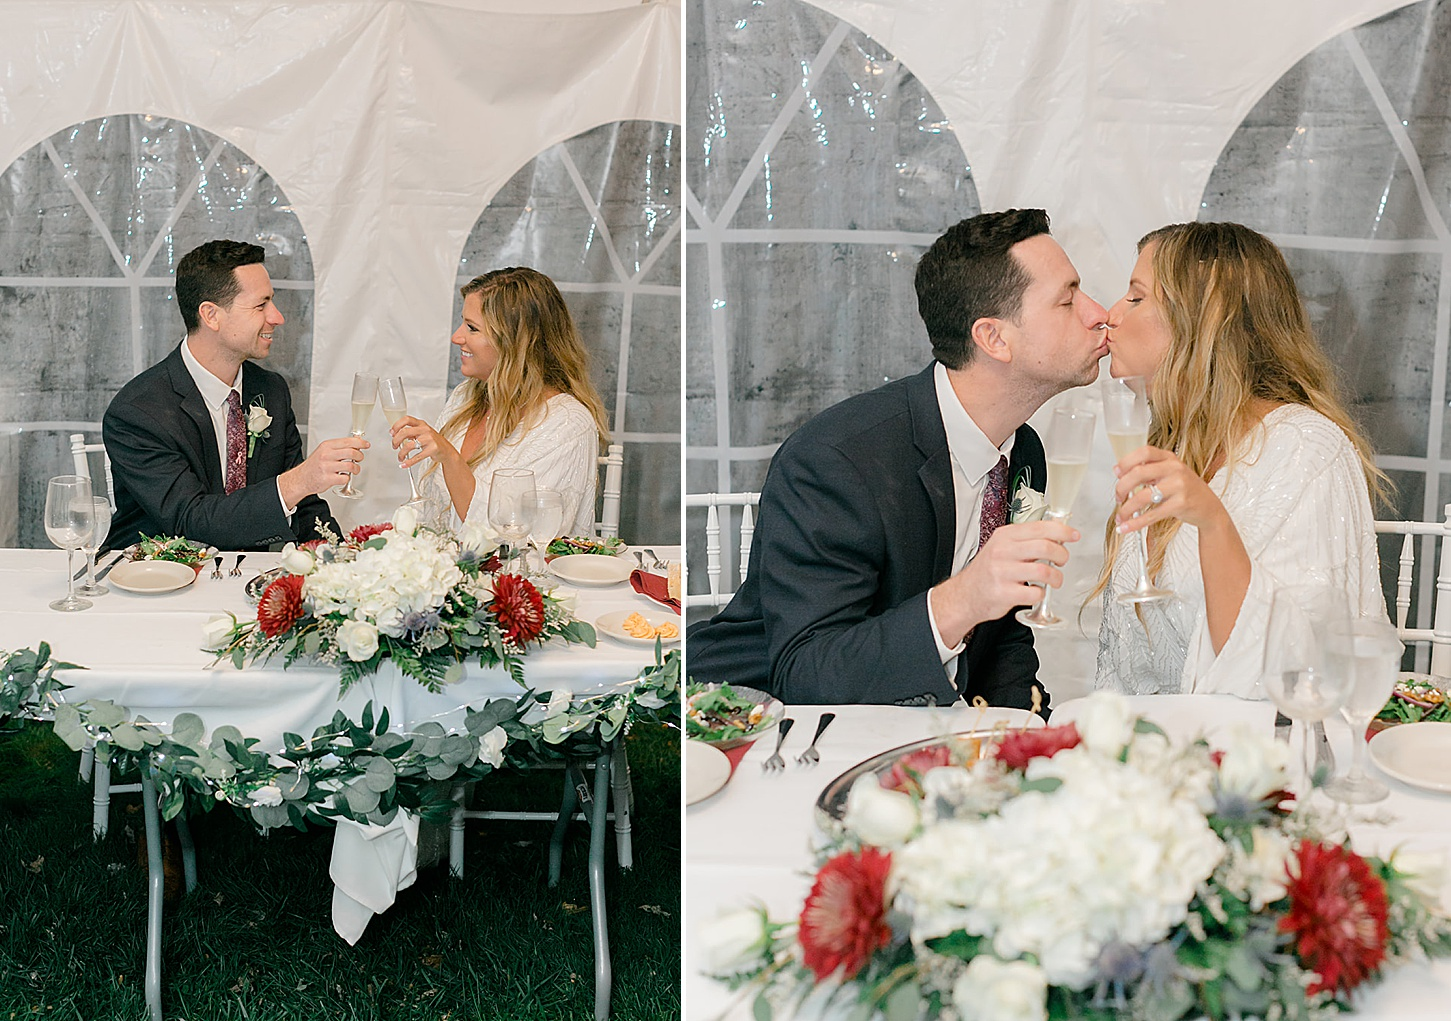 Cape May Intimate Wedding Photography by Magdalena Studios 0028